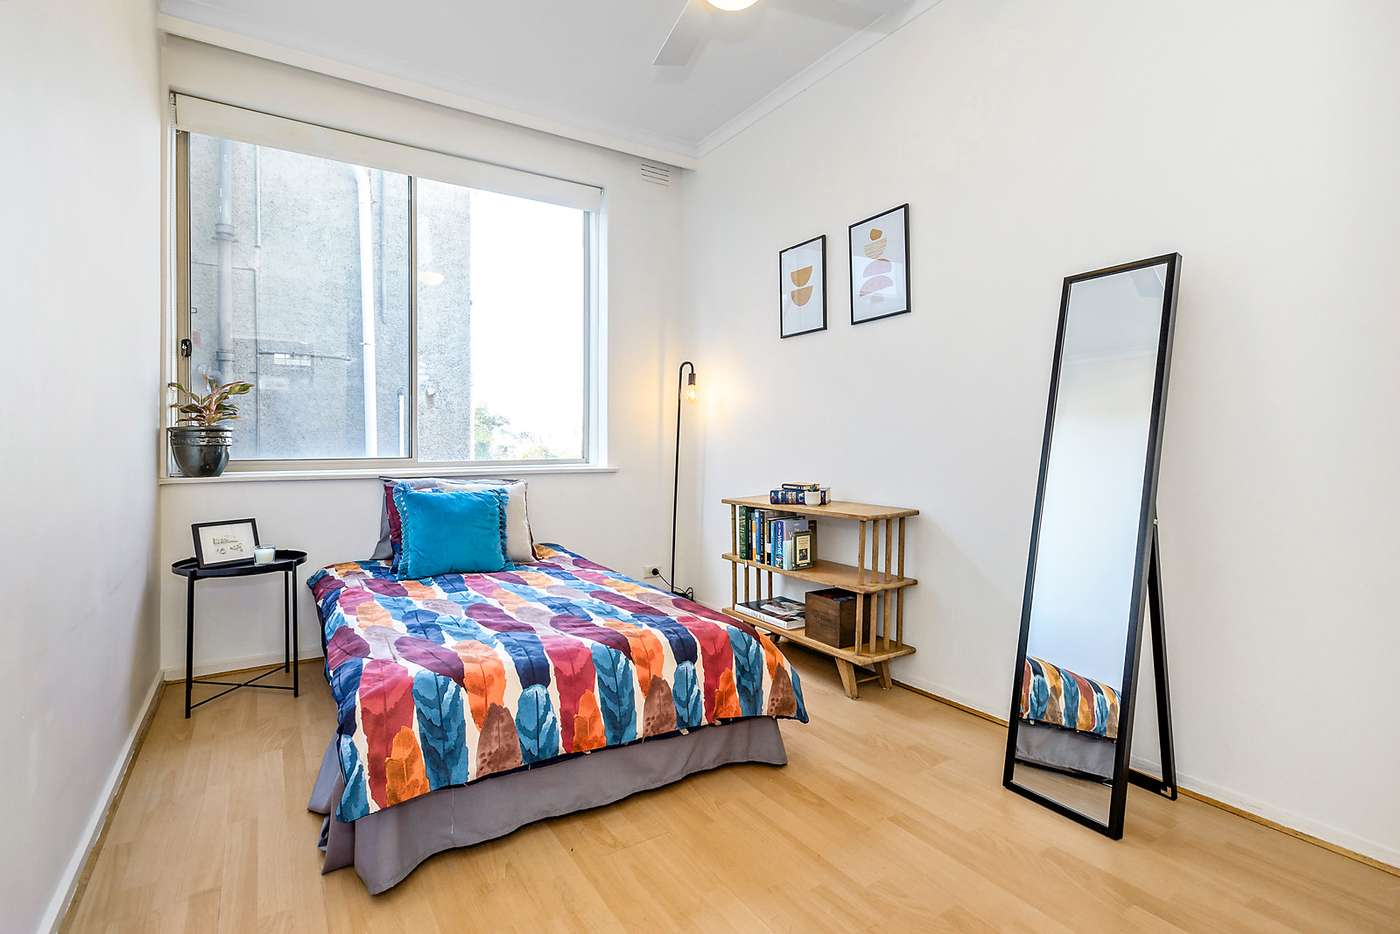 Sixth view of Homely apartment listing, 13/27 Robe Street, St Kilda VIC 3182